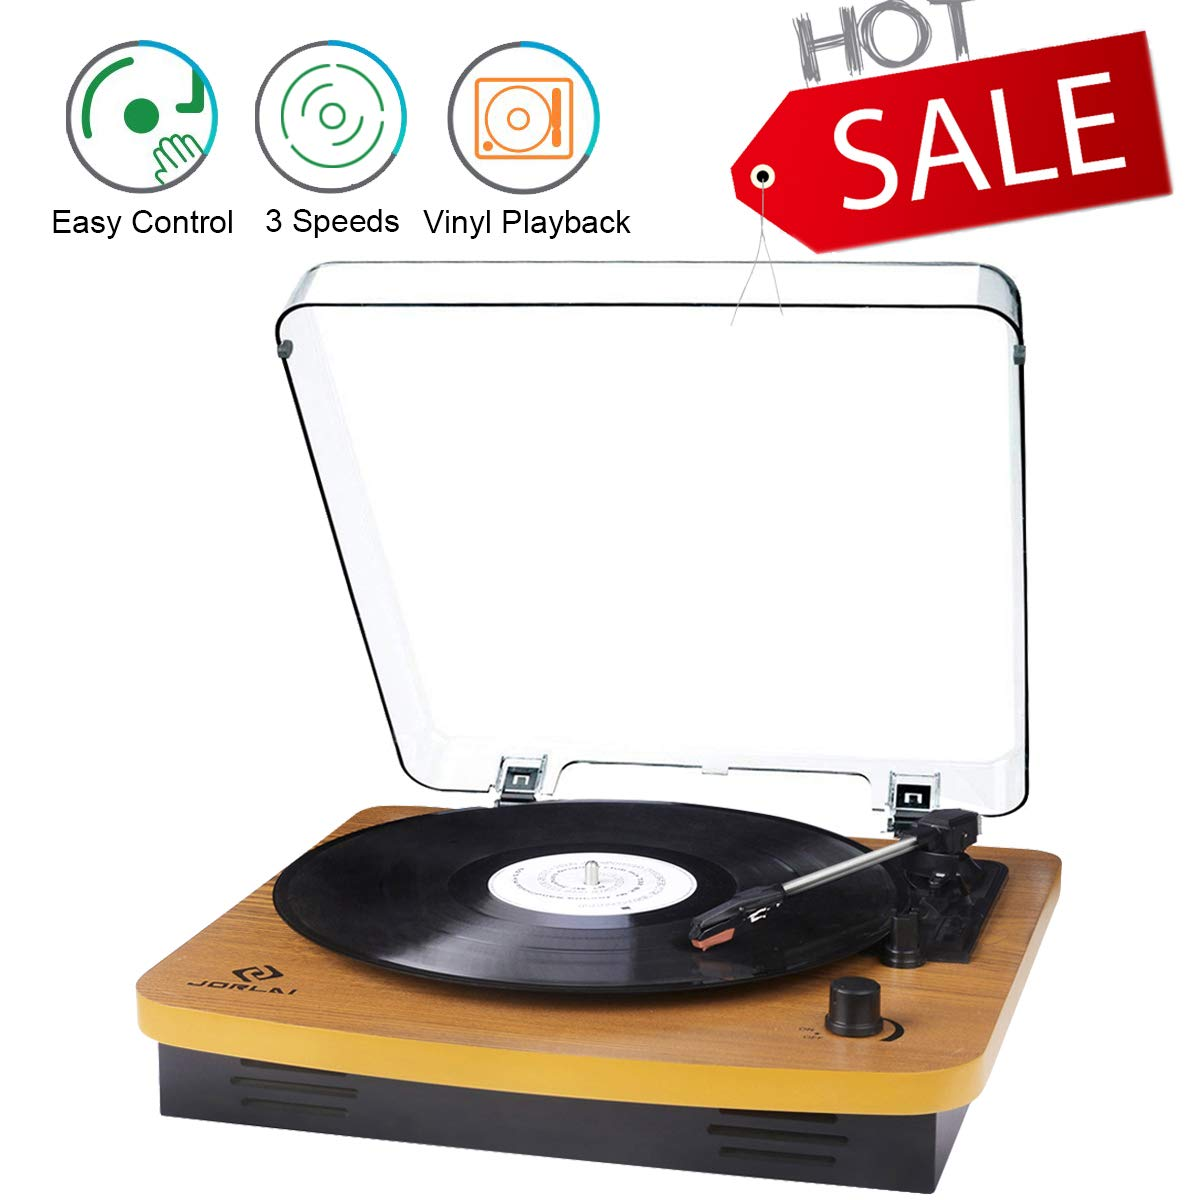 JORLAI Record Player, Turntables for Vinyl Records, 33 45 78 RPM Record  Player with Speakers, Vinyl to MP3 Recording Capable, RCA Output, 3 5mm Aux